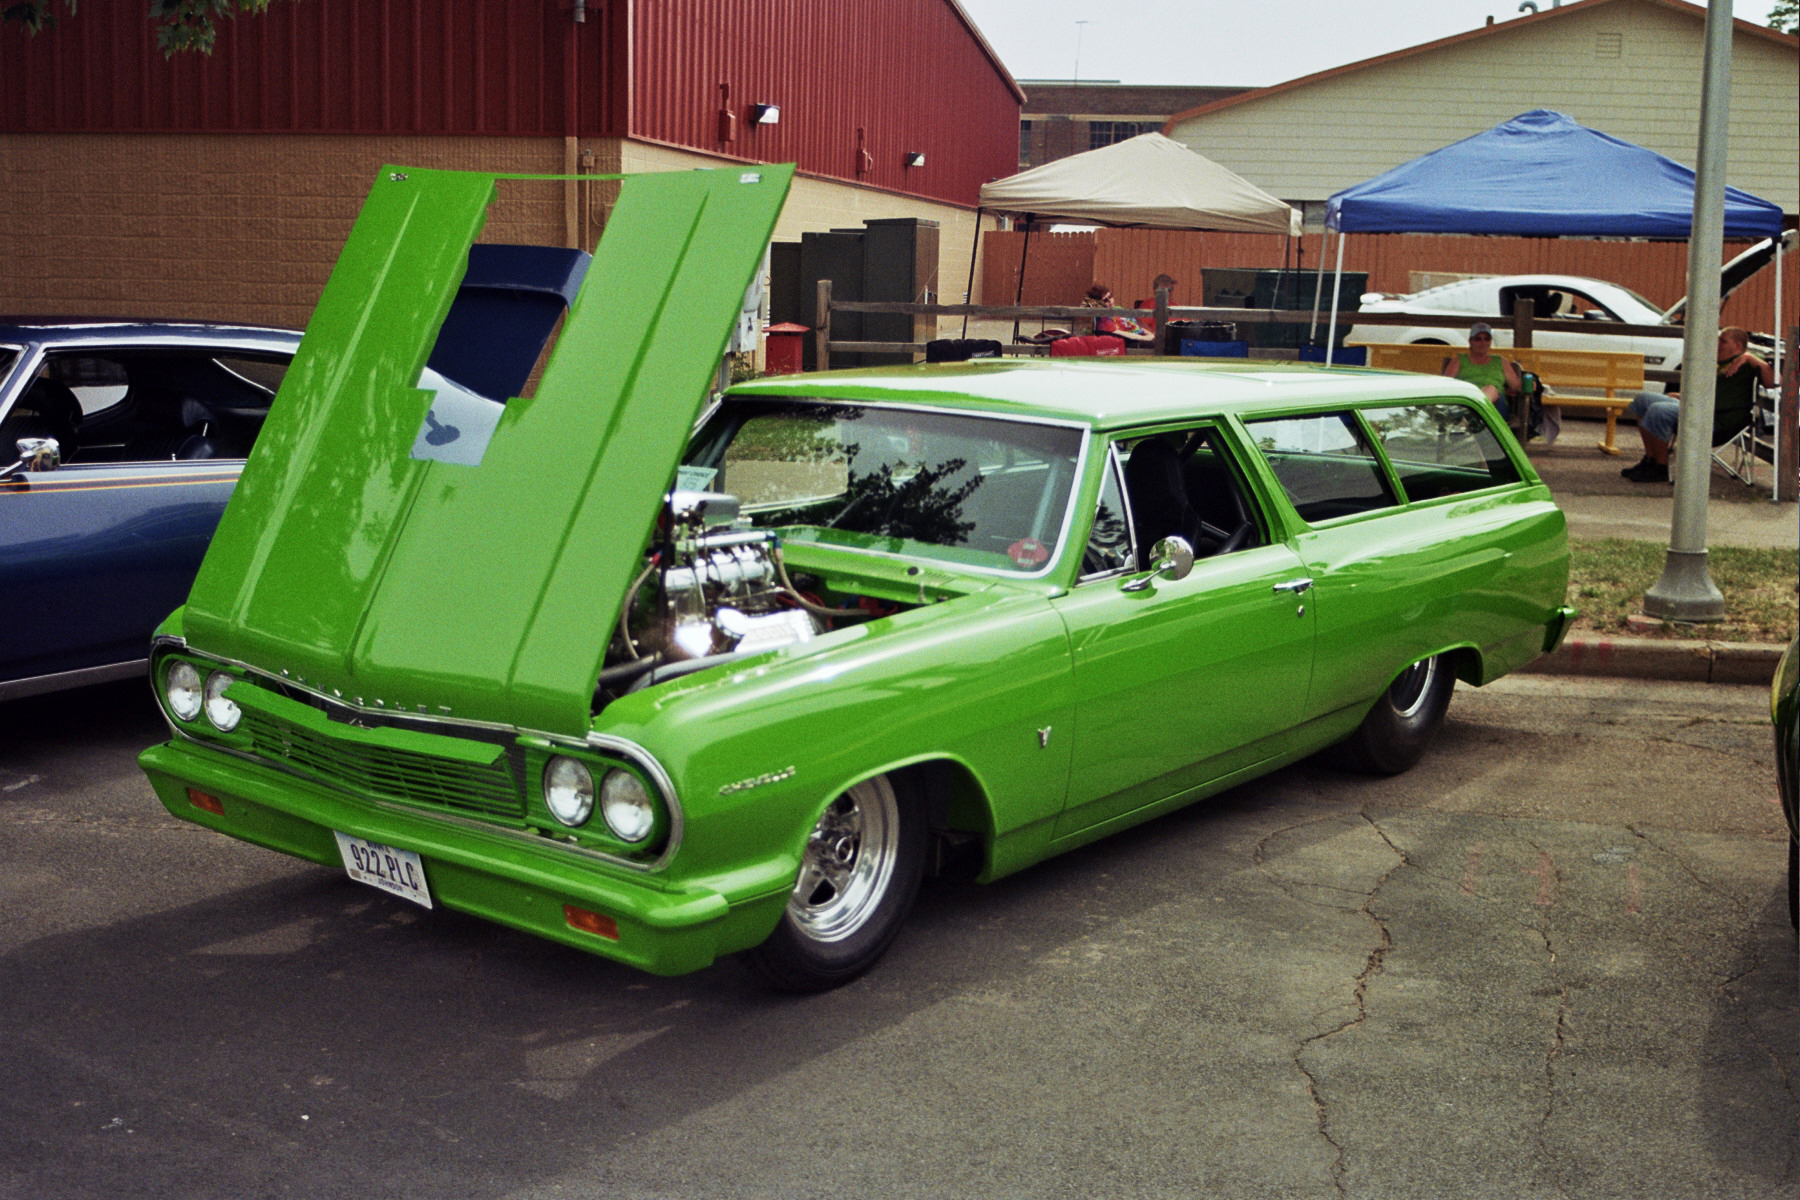 chevrolet malibu hot rod - photo #42